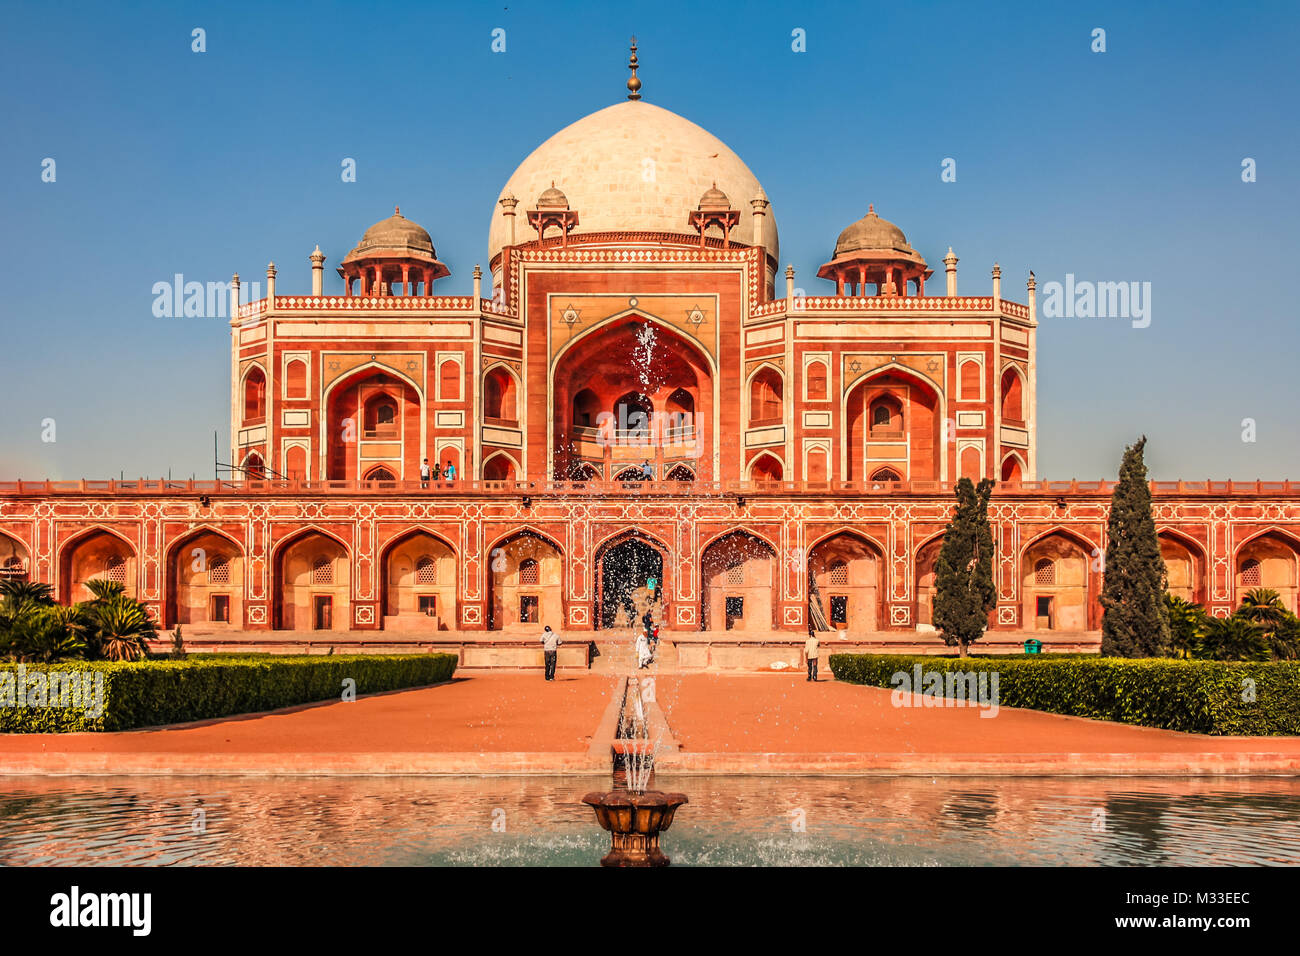 mughal influence on modern india The third gunpowder empire, india's mughal empire, offers perhaps the most dramatic example of modern weaponry carrying the day babur, who founded the empire, was able to defeat ibrahim lodi of the last delhi sultanate at the first battle of panipat in 1526.